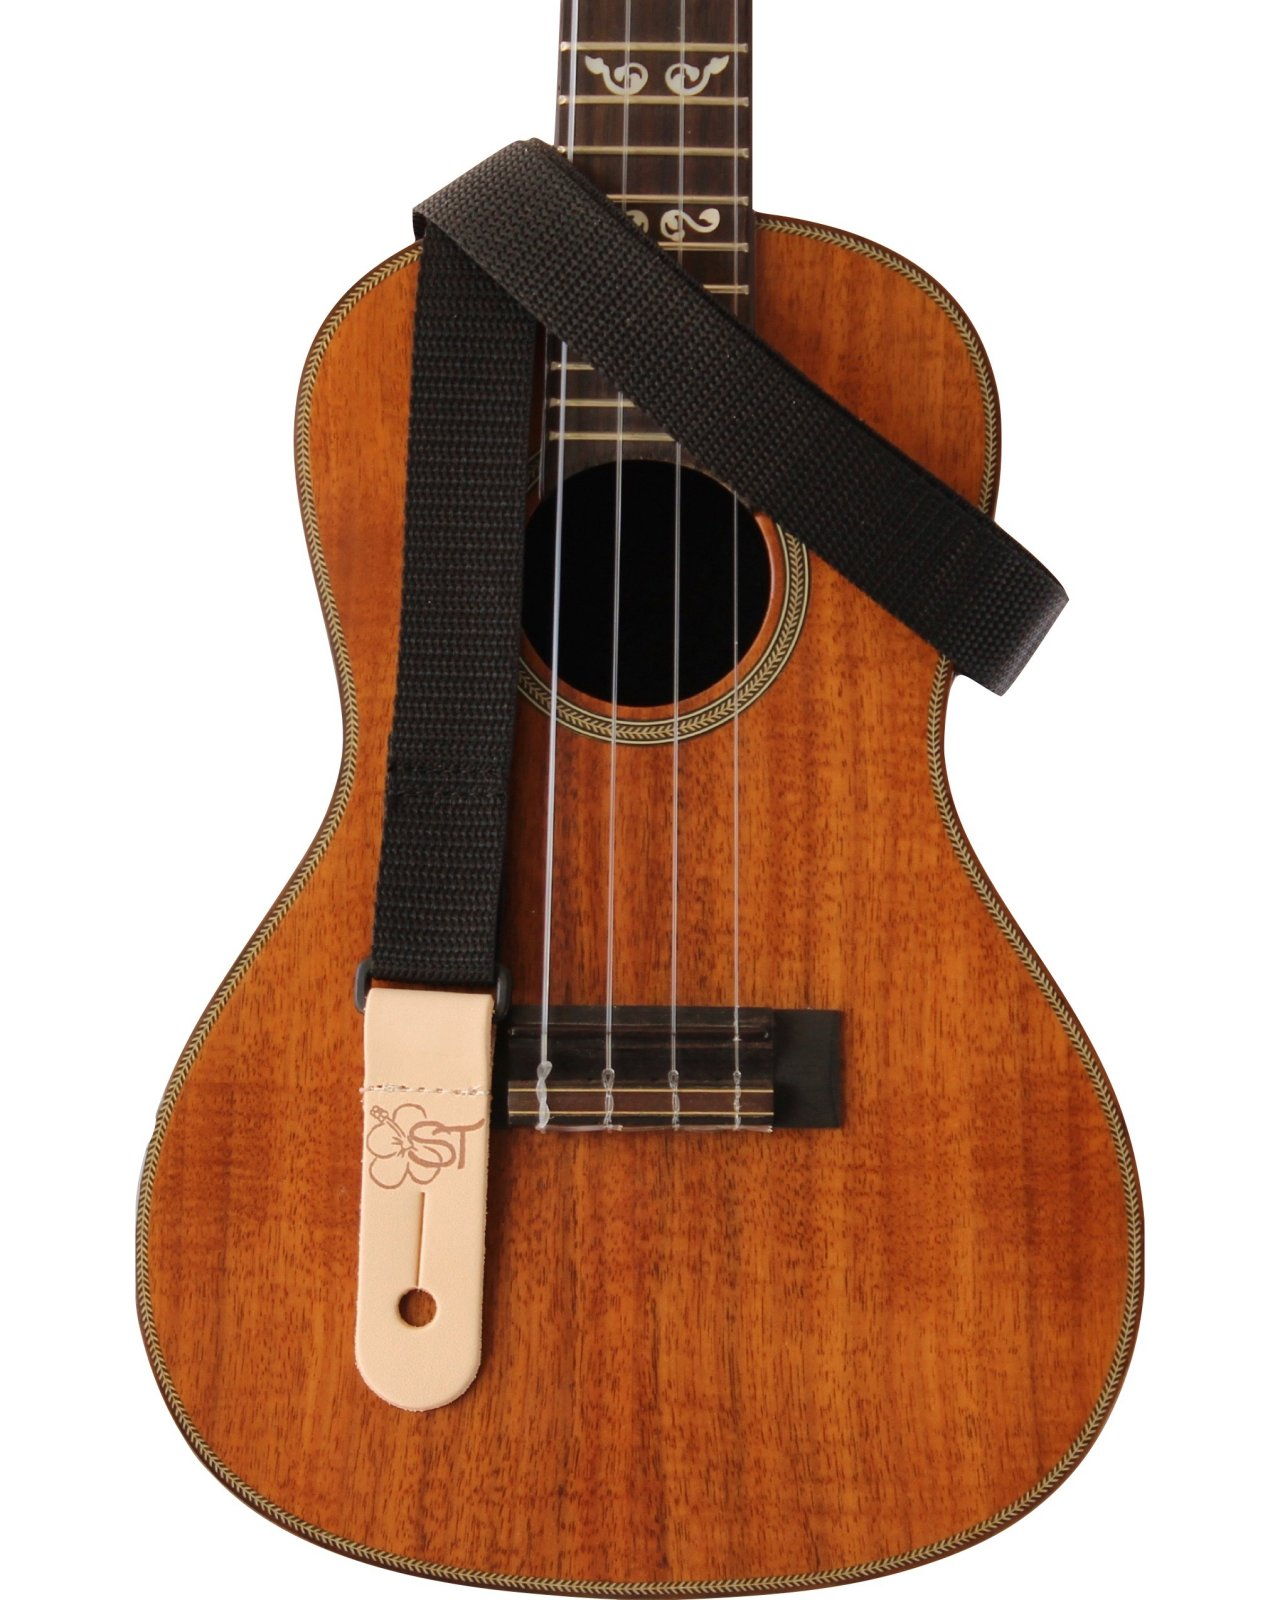 Sherrin's Threads 1 Kids Ukulele Strap - Black